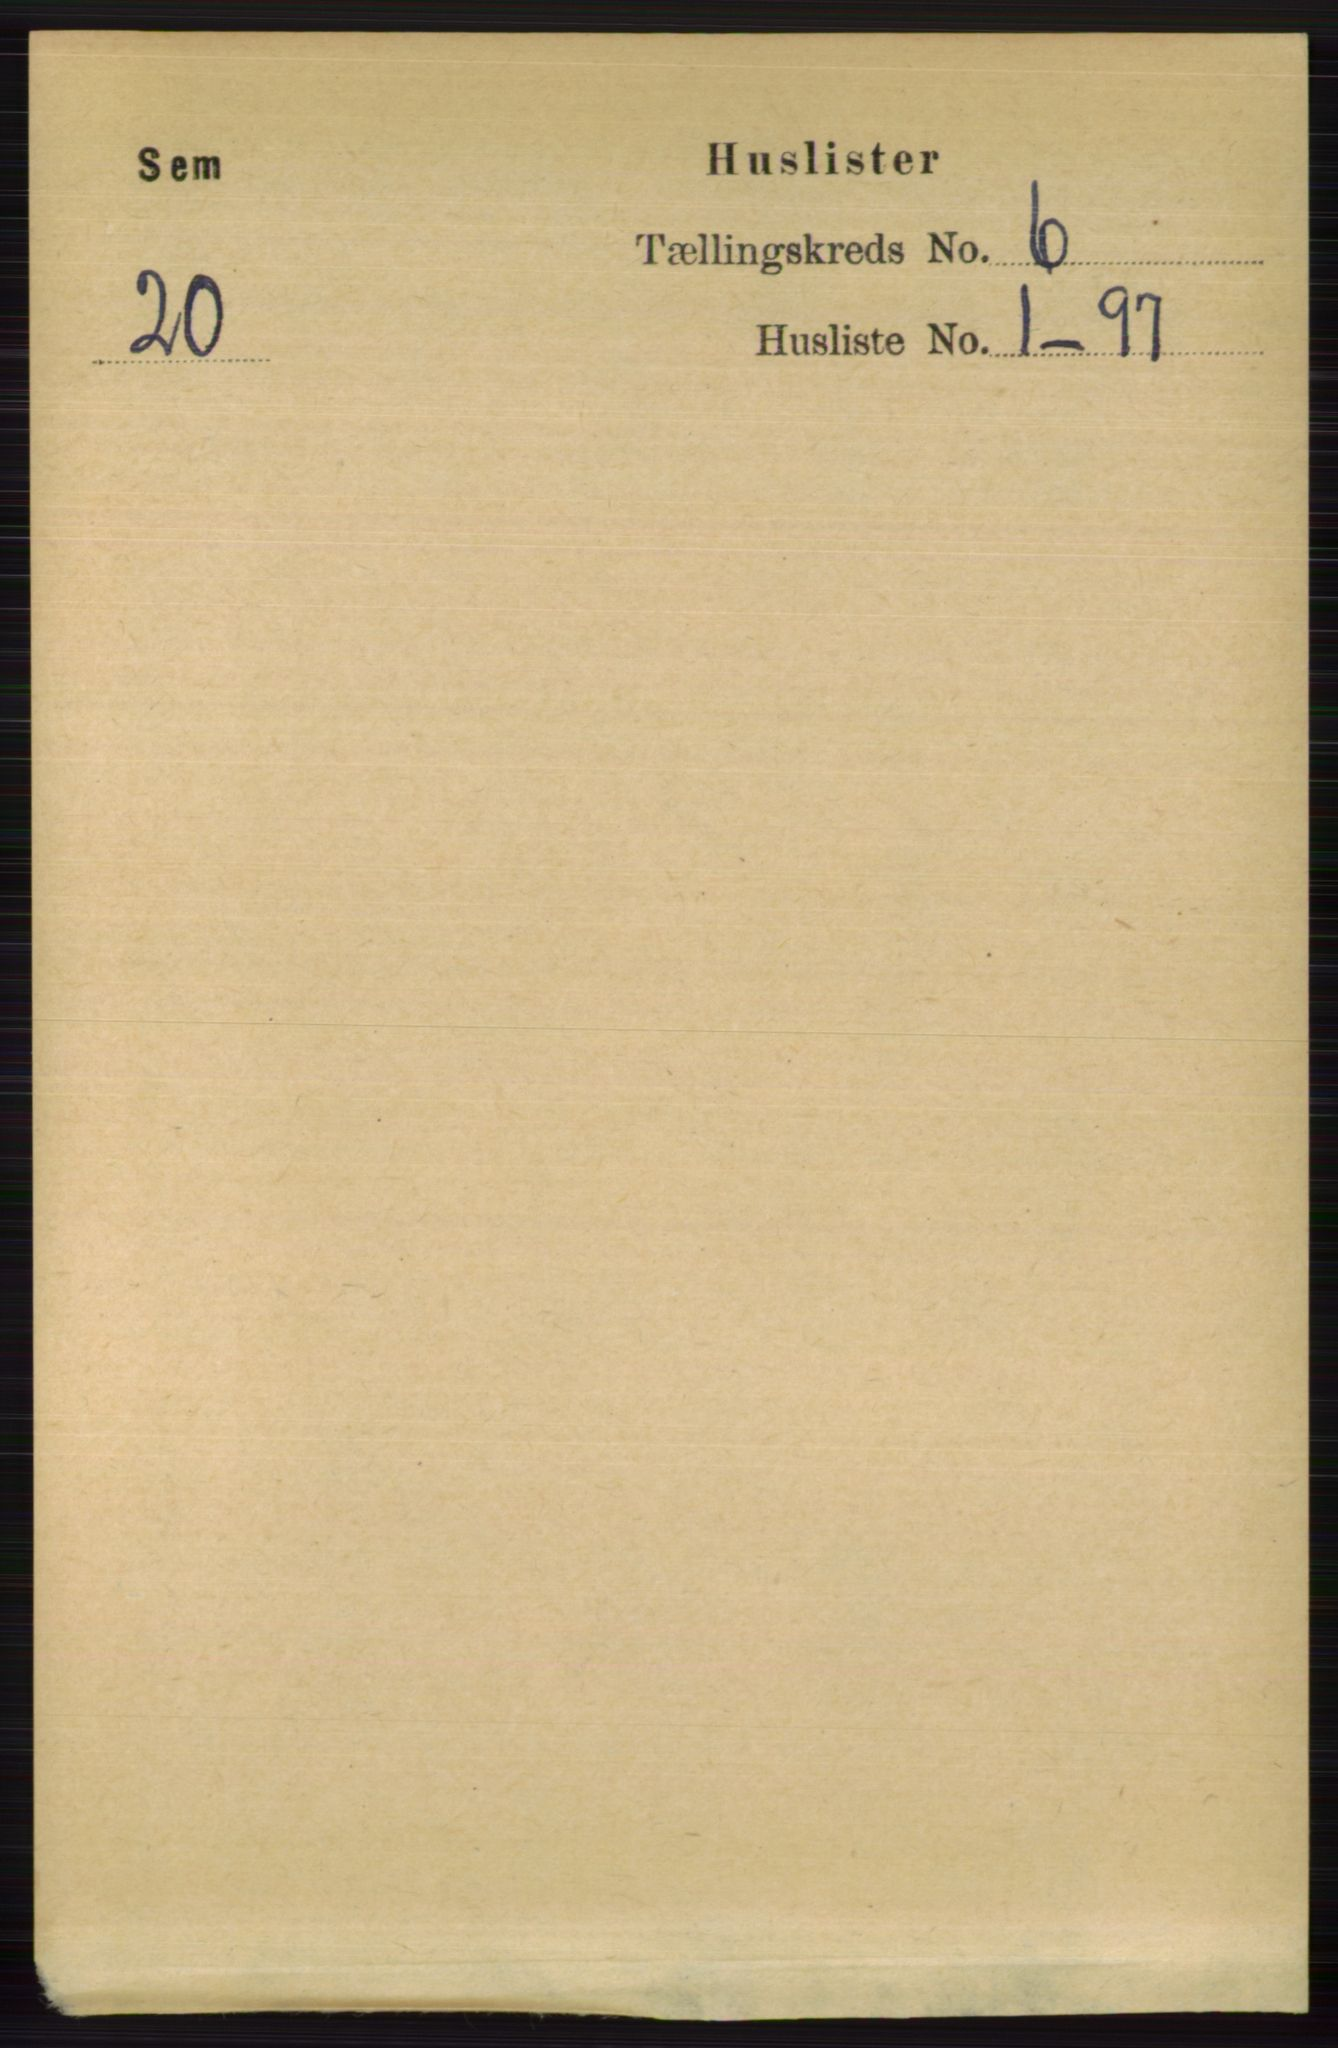 RA, Folketelling 1891 for 0721 Sem herred, 1891, s. 2528